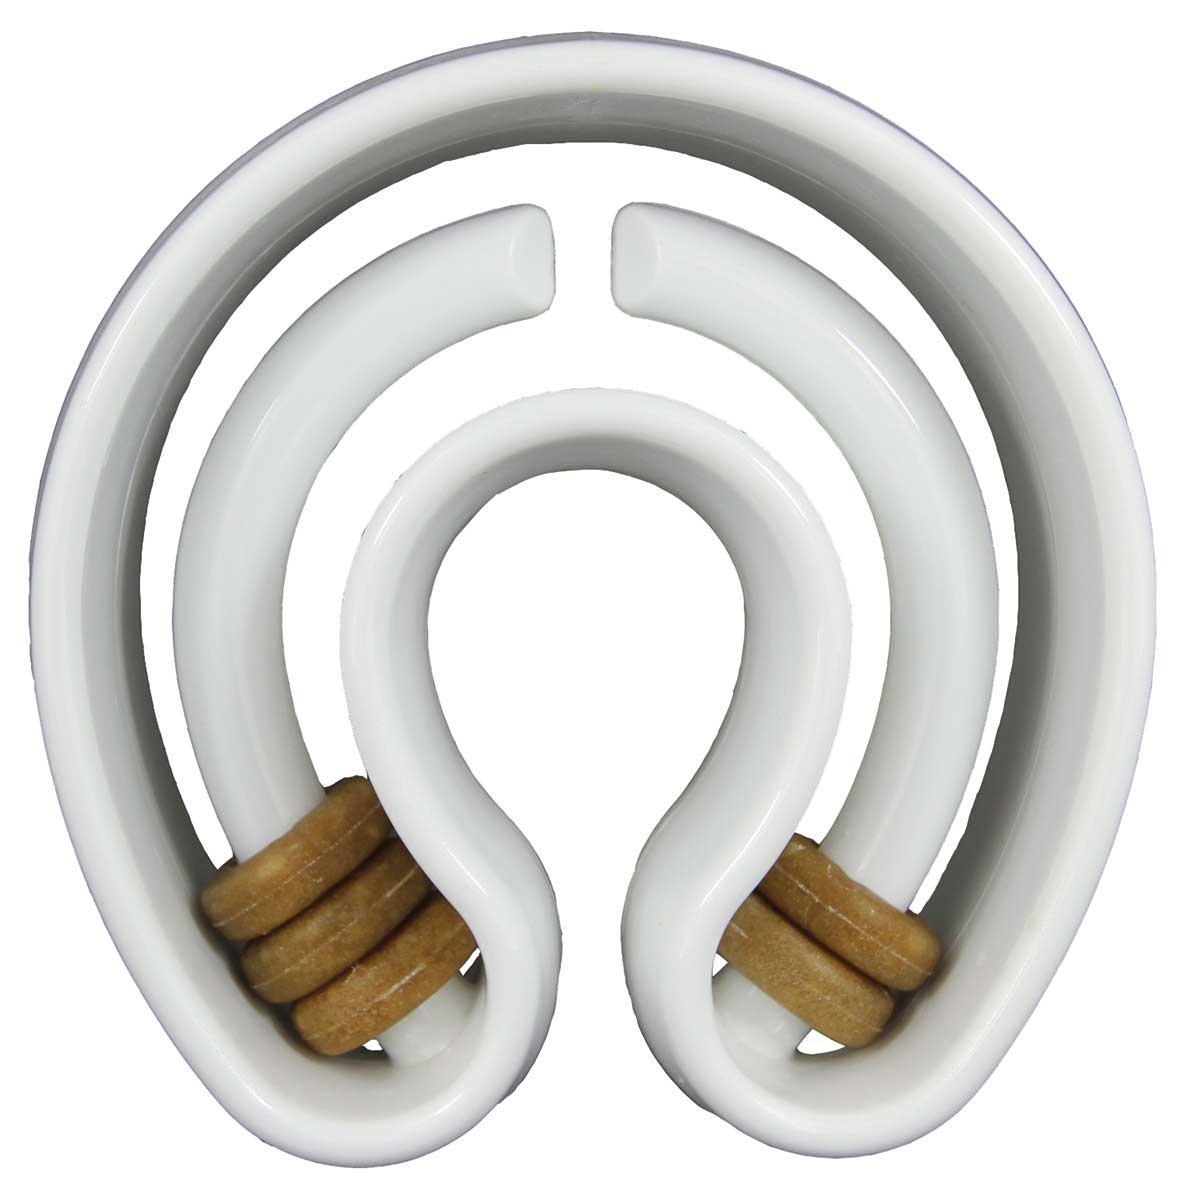 Starmark Treat Ringer Horseshoe Dog Toy